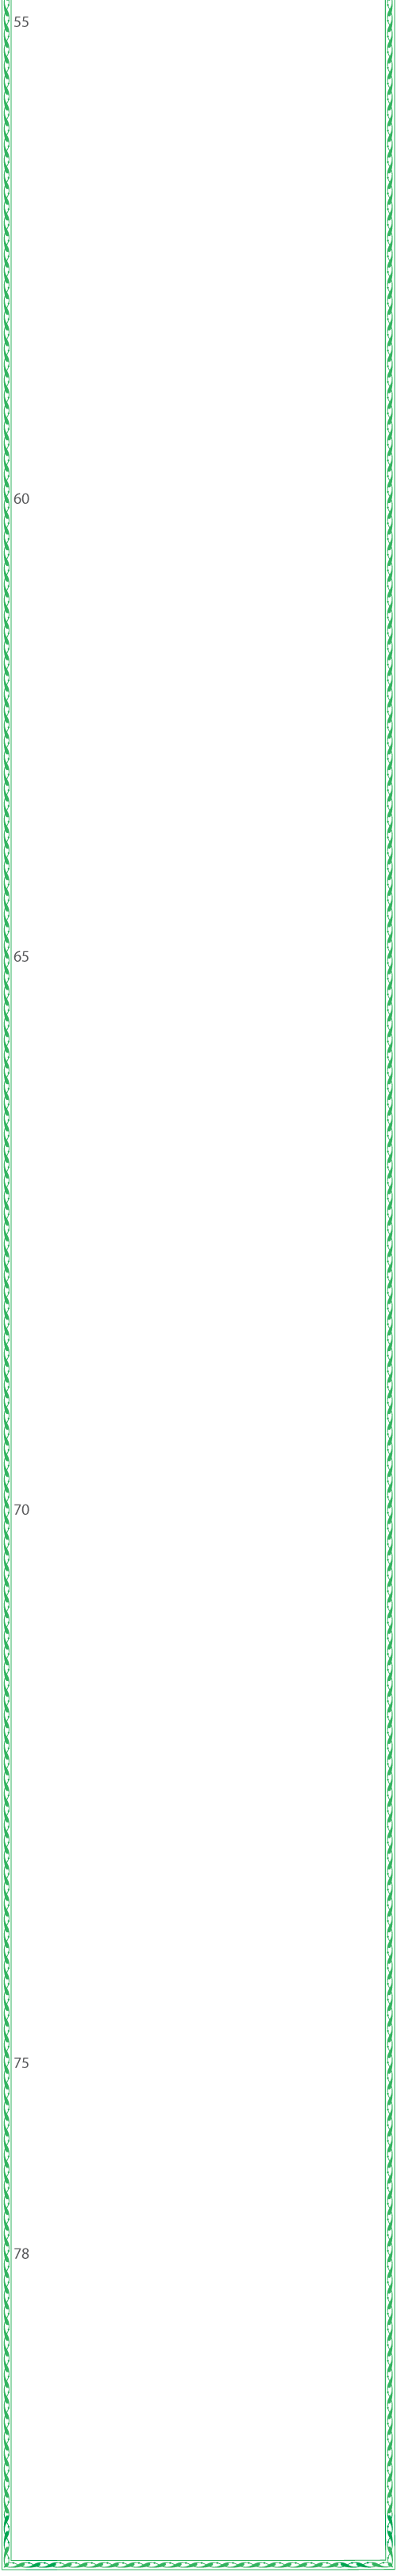 TheWahyProject-Article-HajjInTheQuran3-1013-2